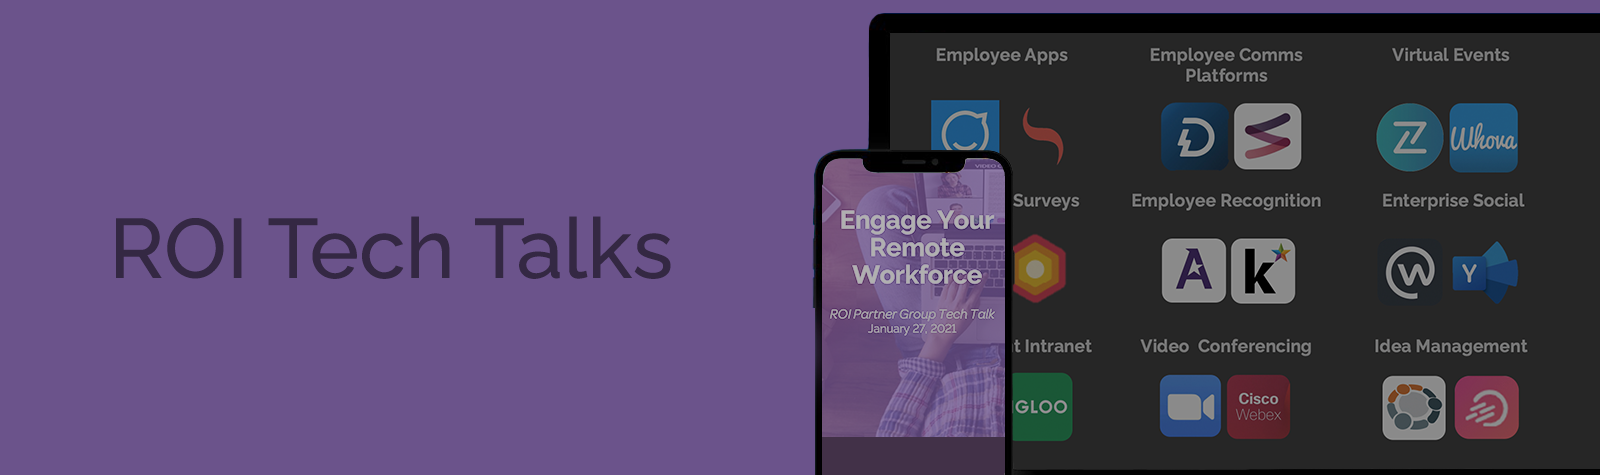 ROI Tech Talk: New Ways to Use Tech to Engage Your Remote Workforce